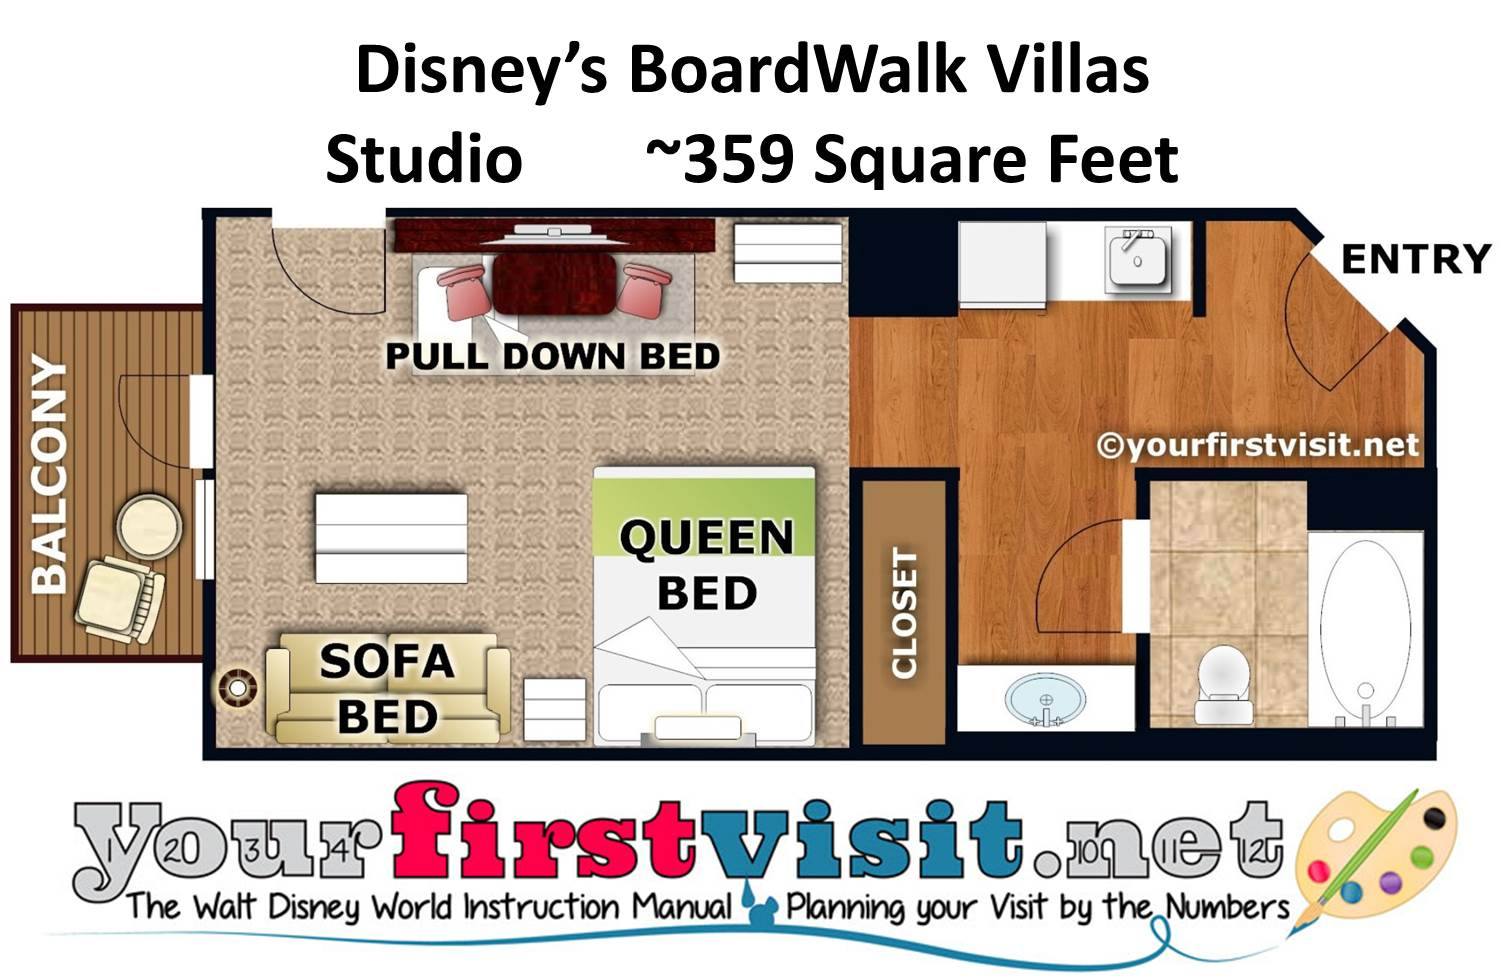 Best two bedroom villas at disney world small house - 2 bedroom villas near disney world ...